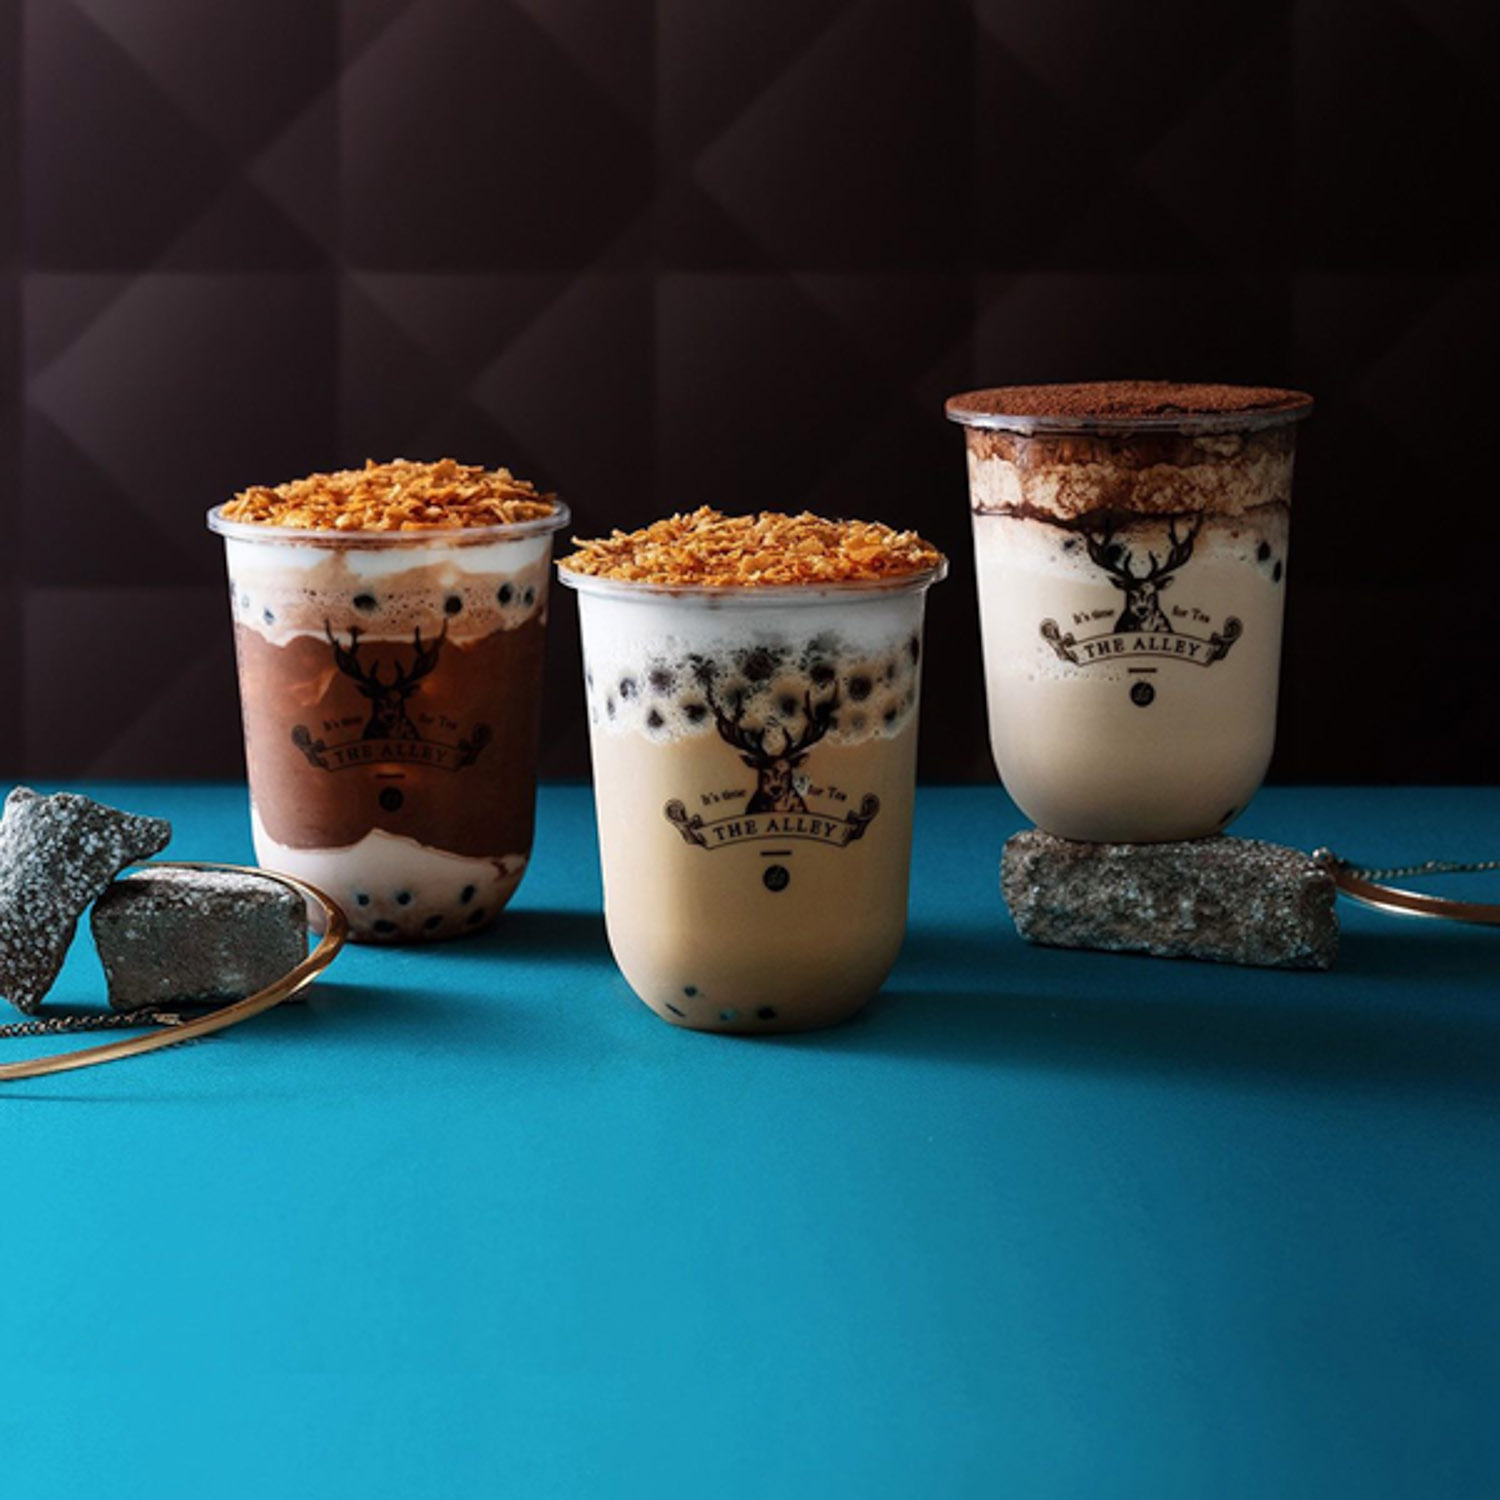 The Alley Has New Crunchy Milk Tea Series With Three Different Flavours